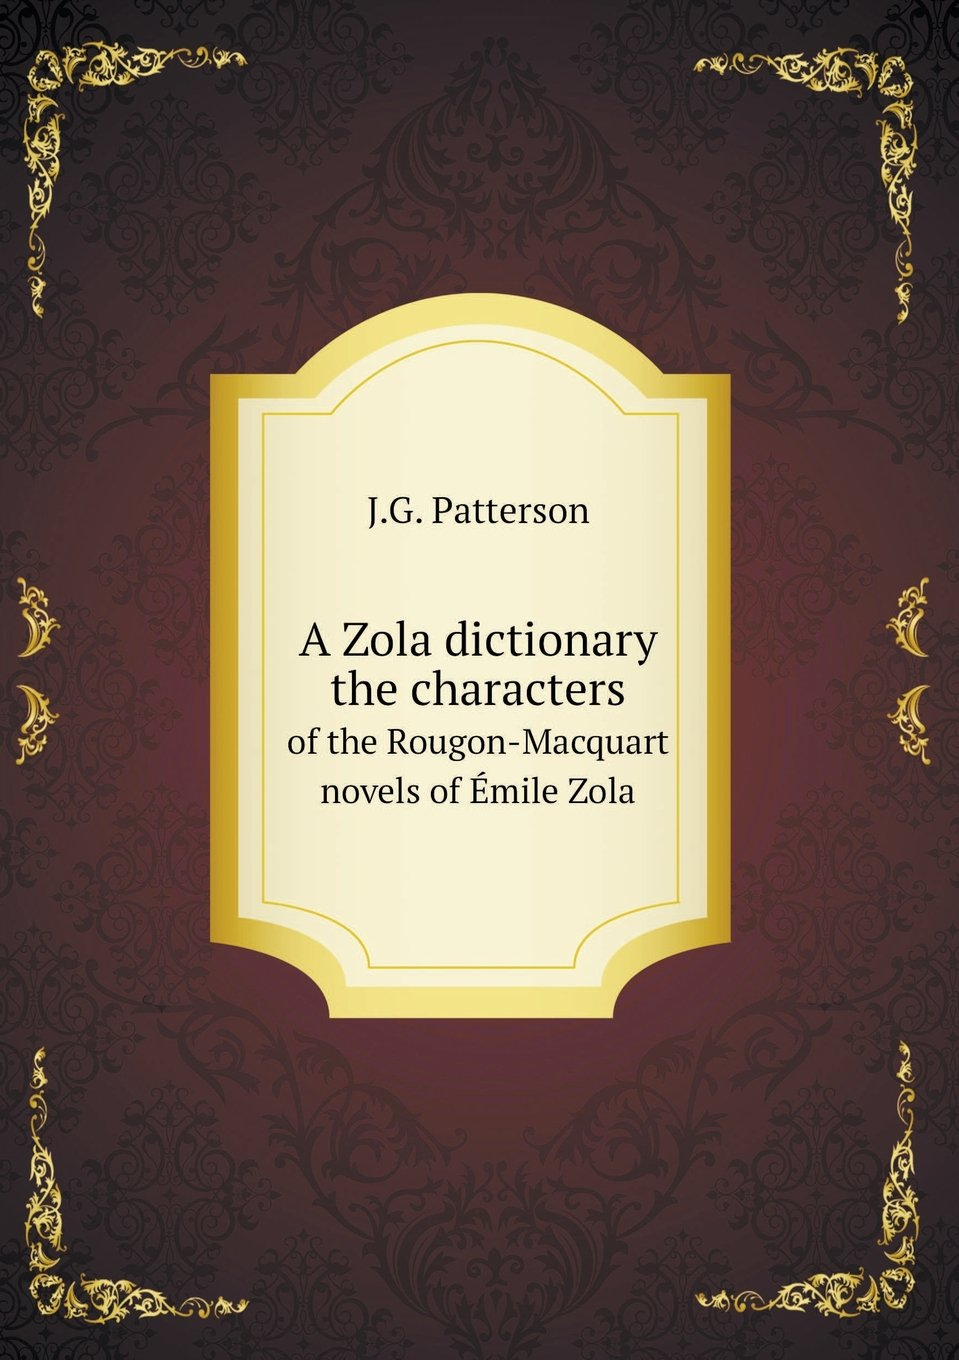 Download A Zola dictionary the characters of the Rougon-Macquart novels of Émile Zola ebook